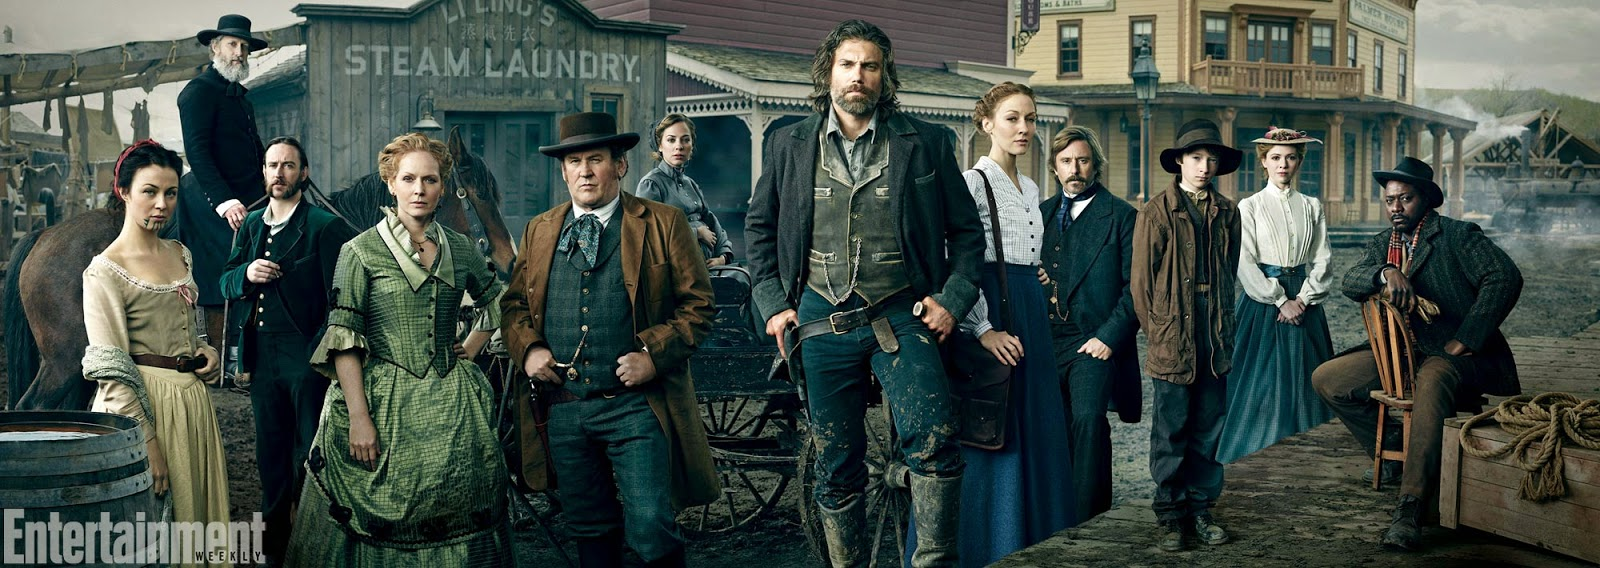 Hell on Wheels - Season 4 - First Official Cast Photo